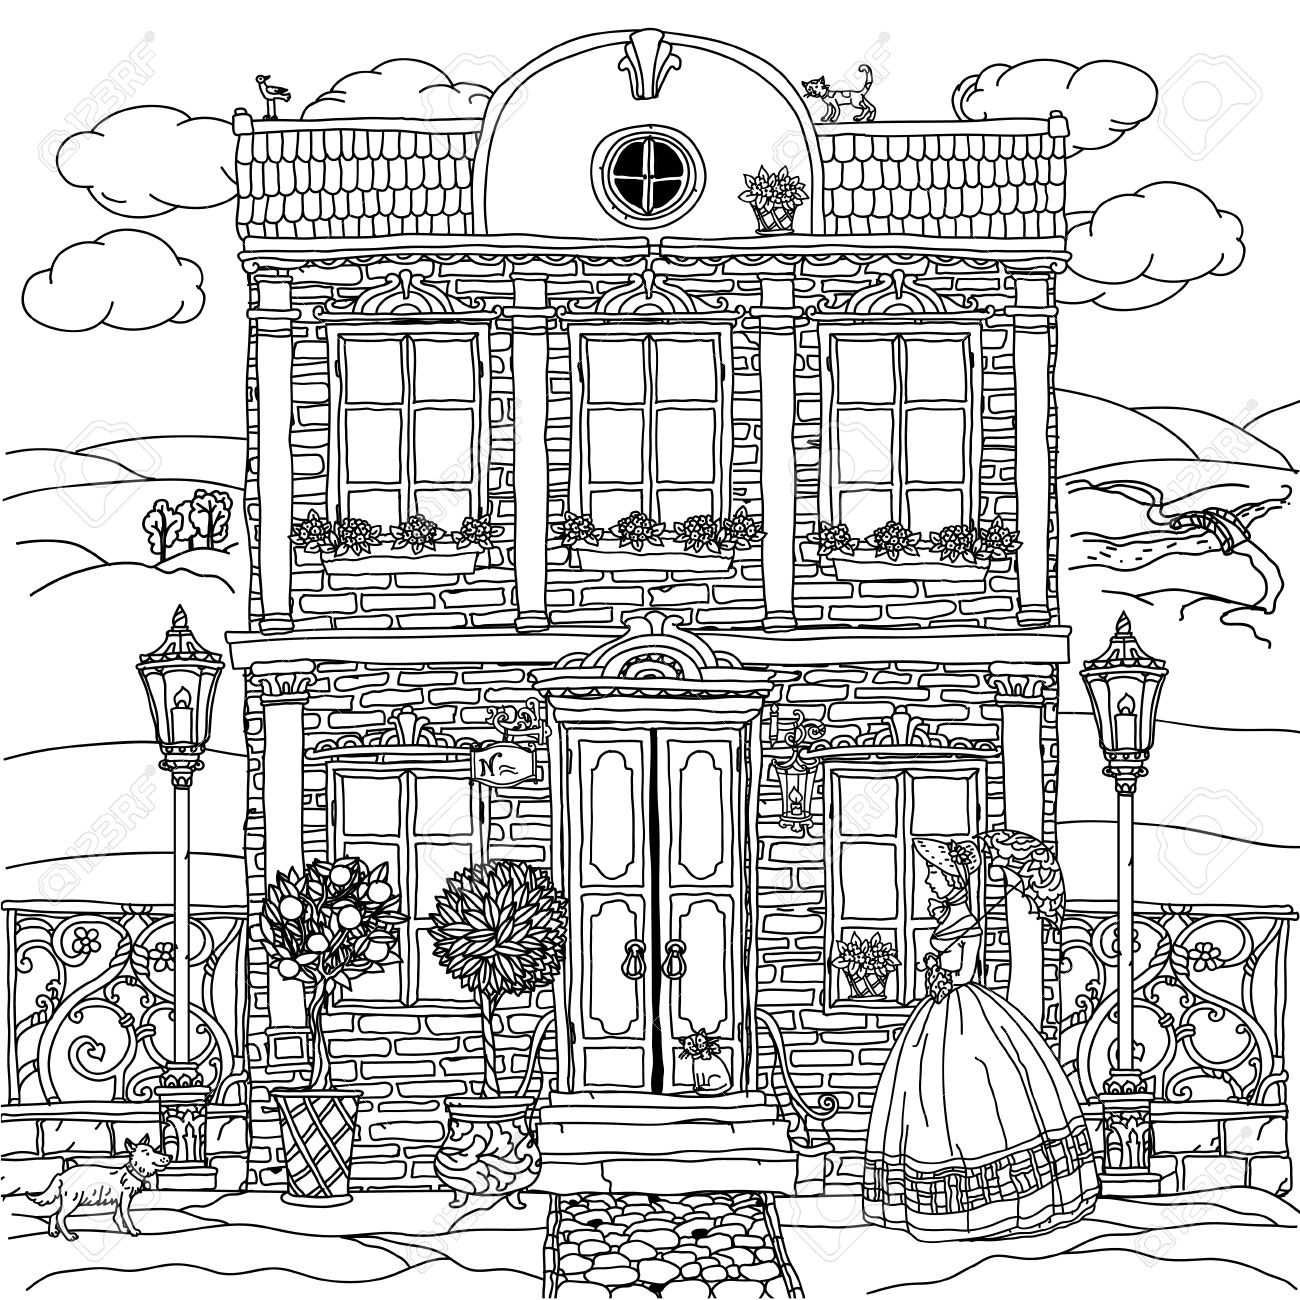 Frontage Of A House With Flowers, Plants, Cat And Dog For Adult ...